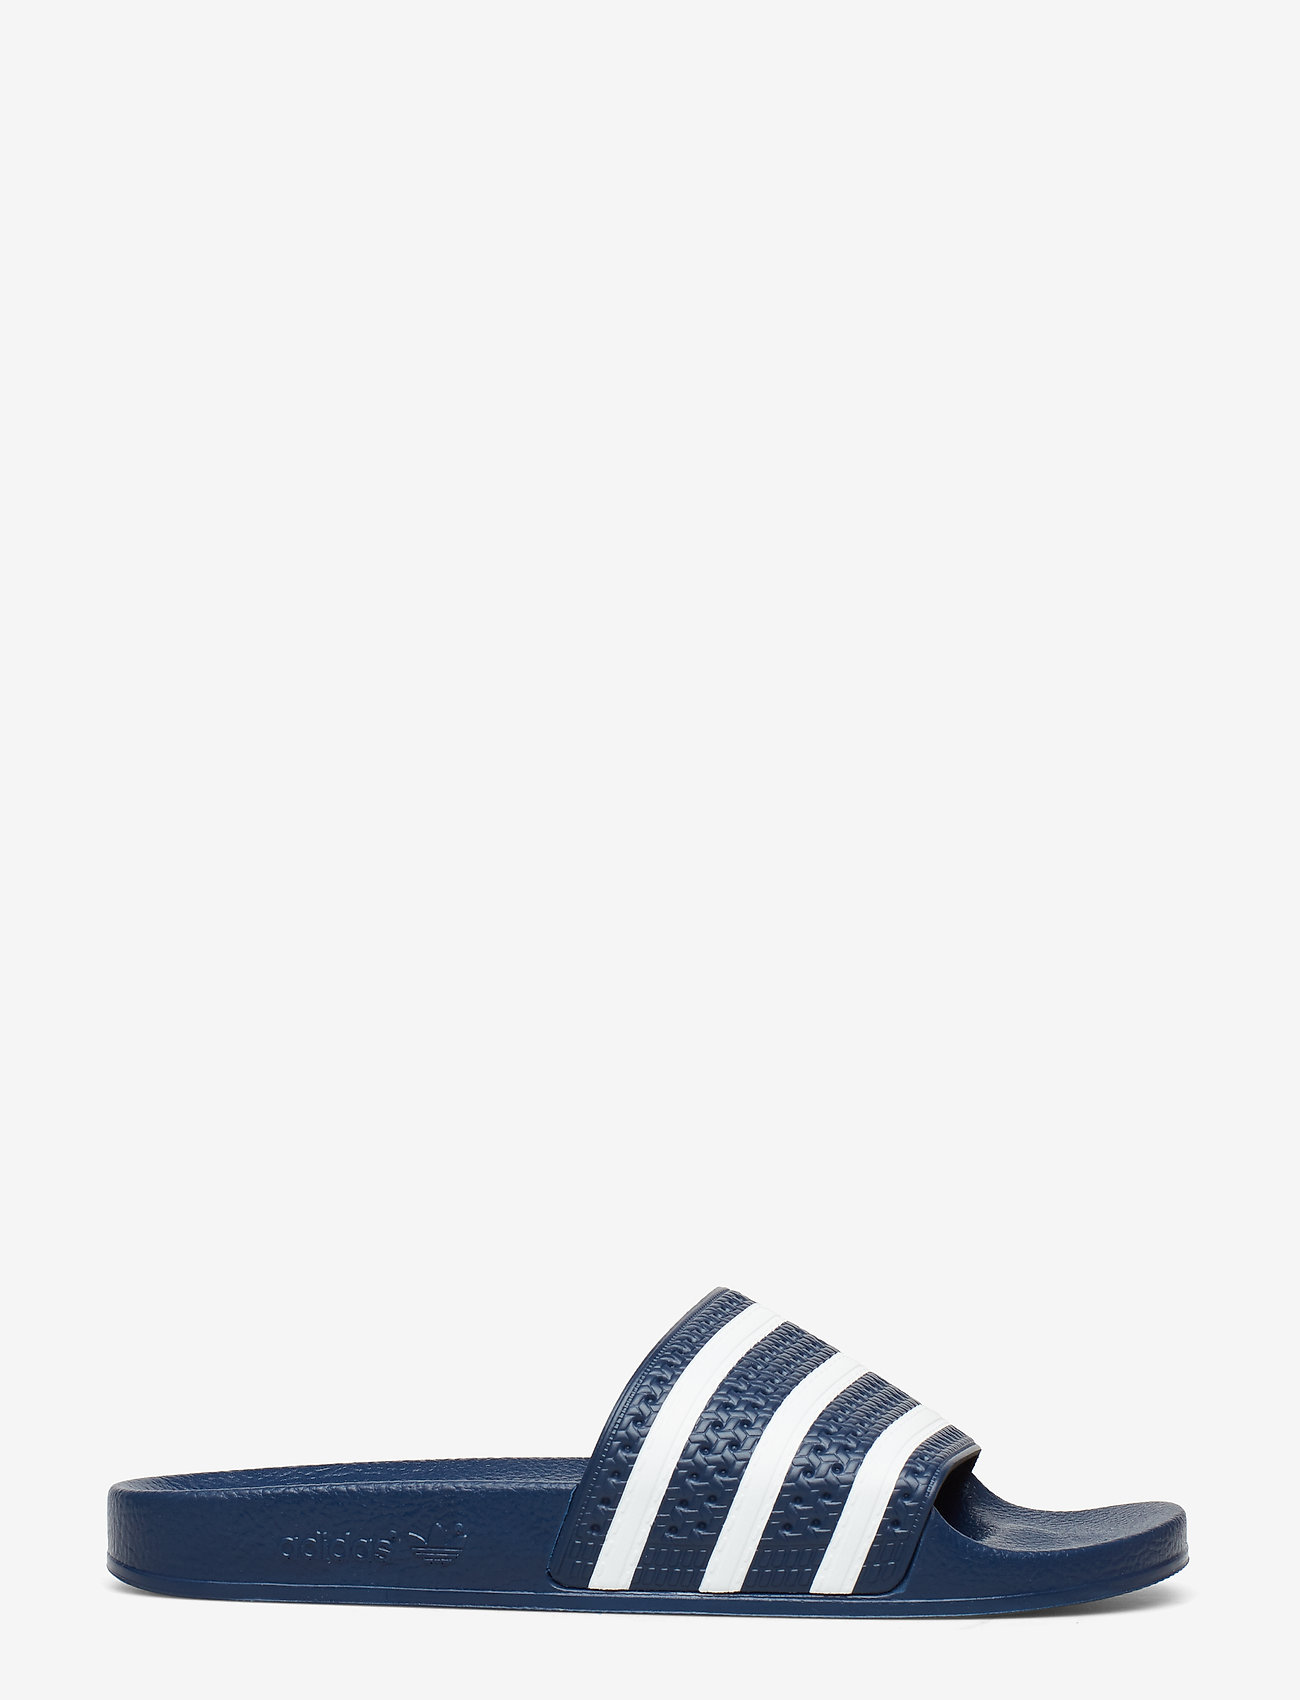 adidas Originals - Adilette Slides - tennarit - adiblu/white/adiblu - 1